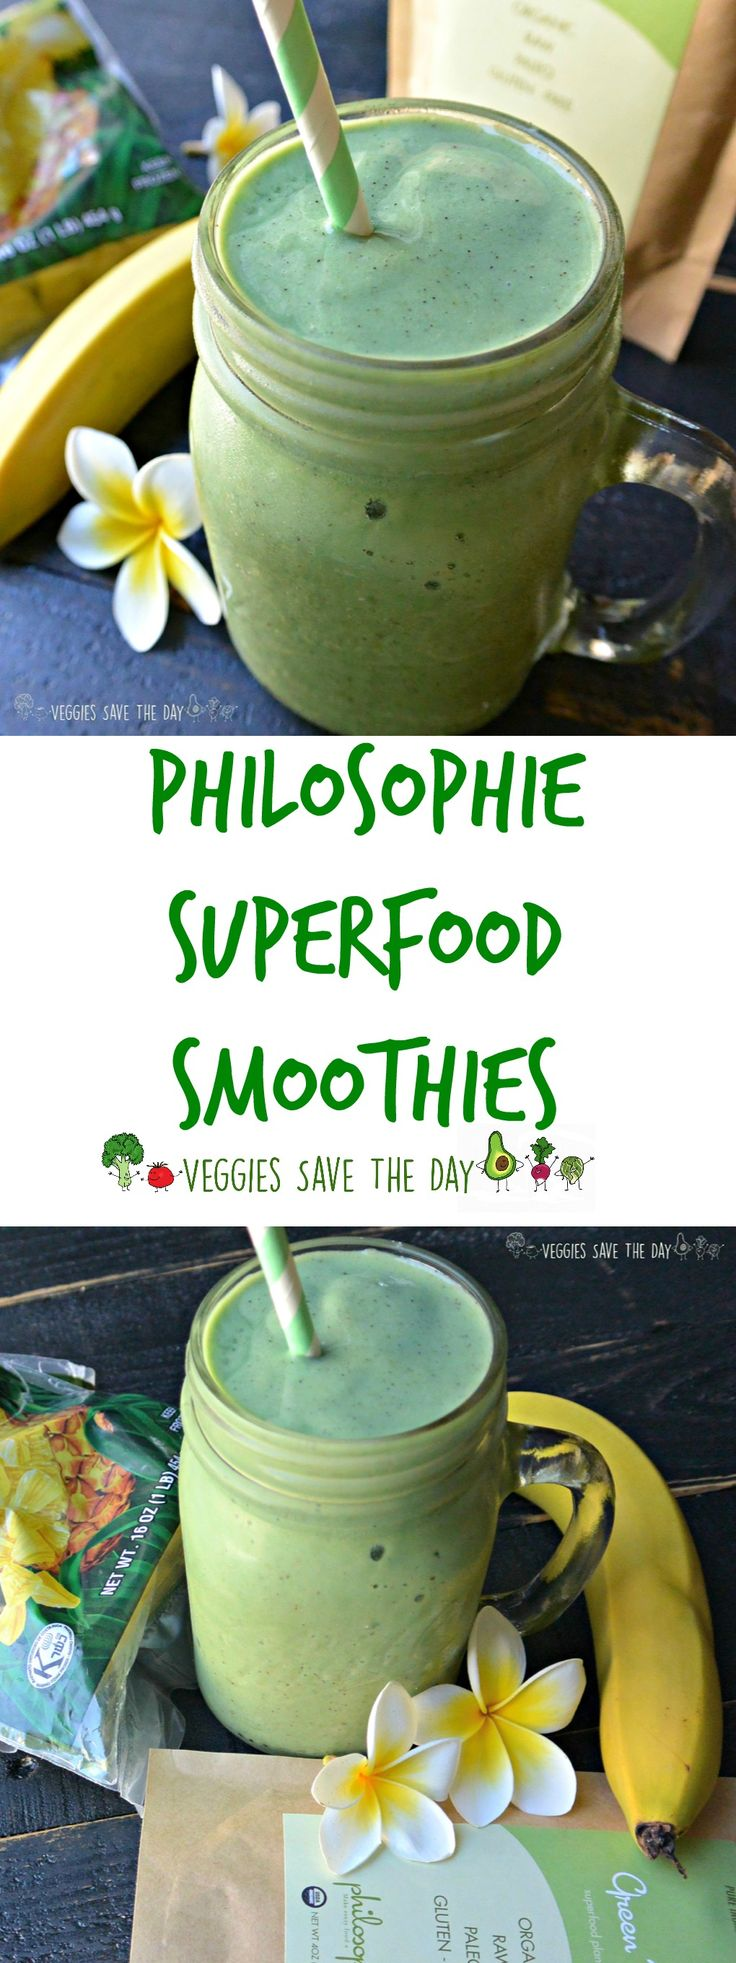 Philosophie plant-based protein powders allow you to turn every food into a…